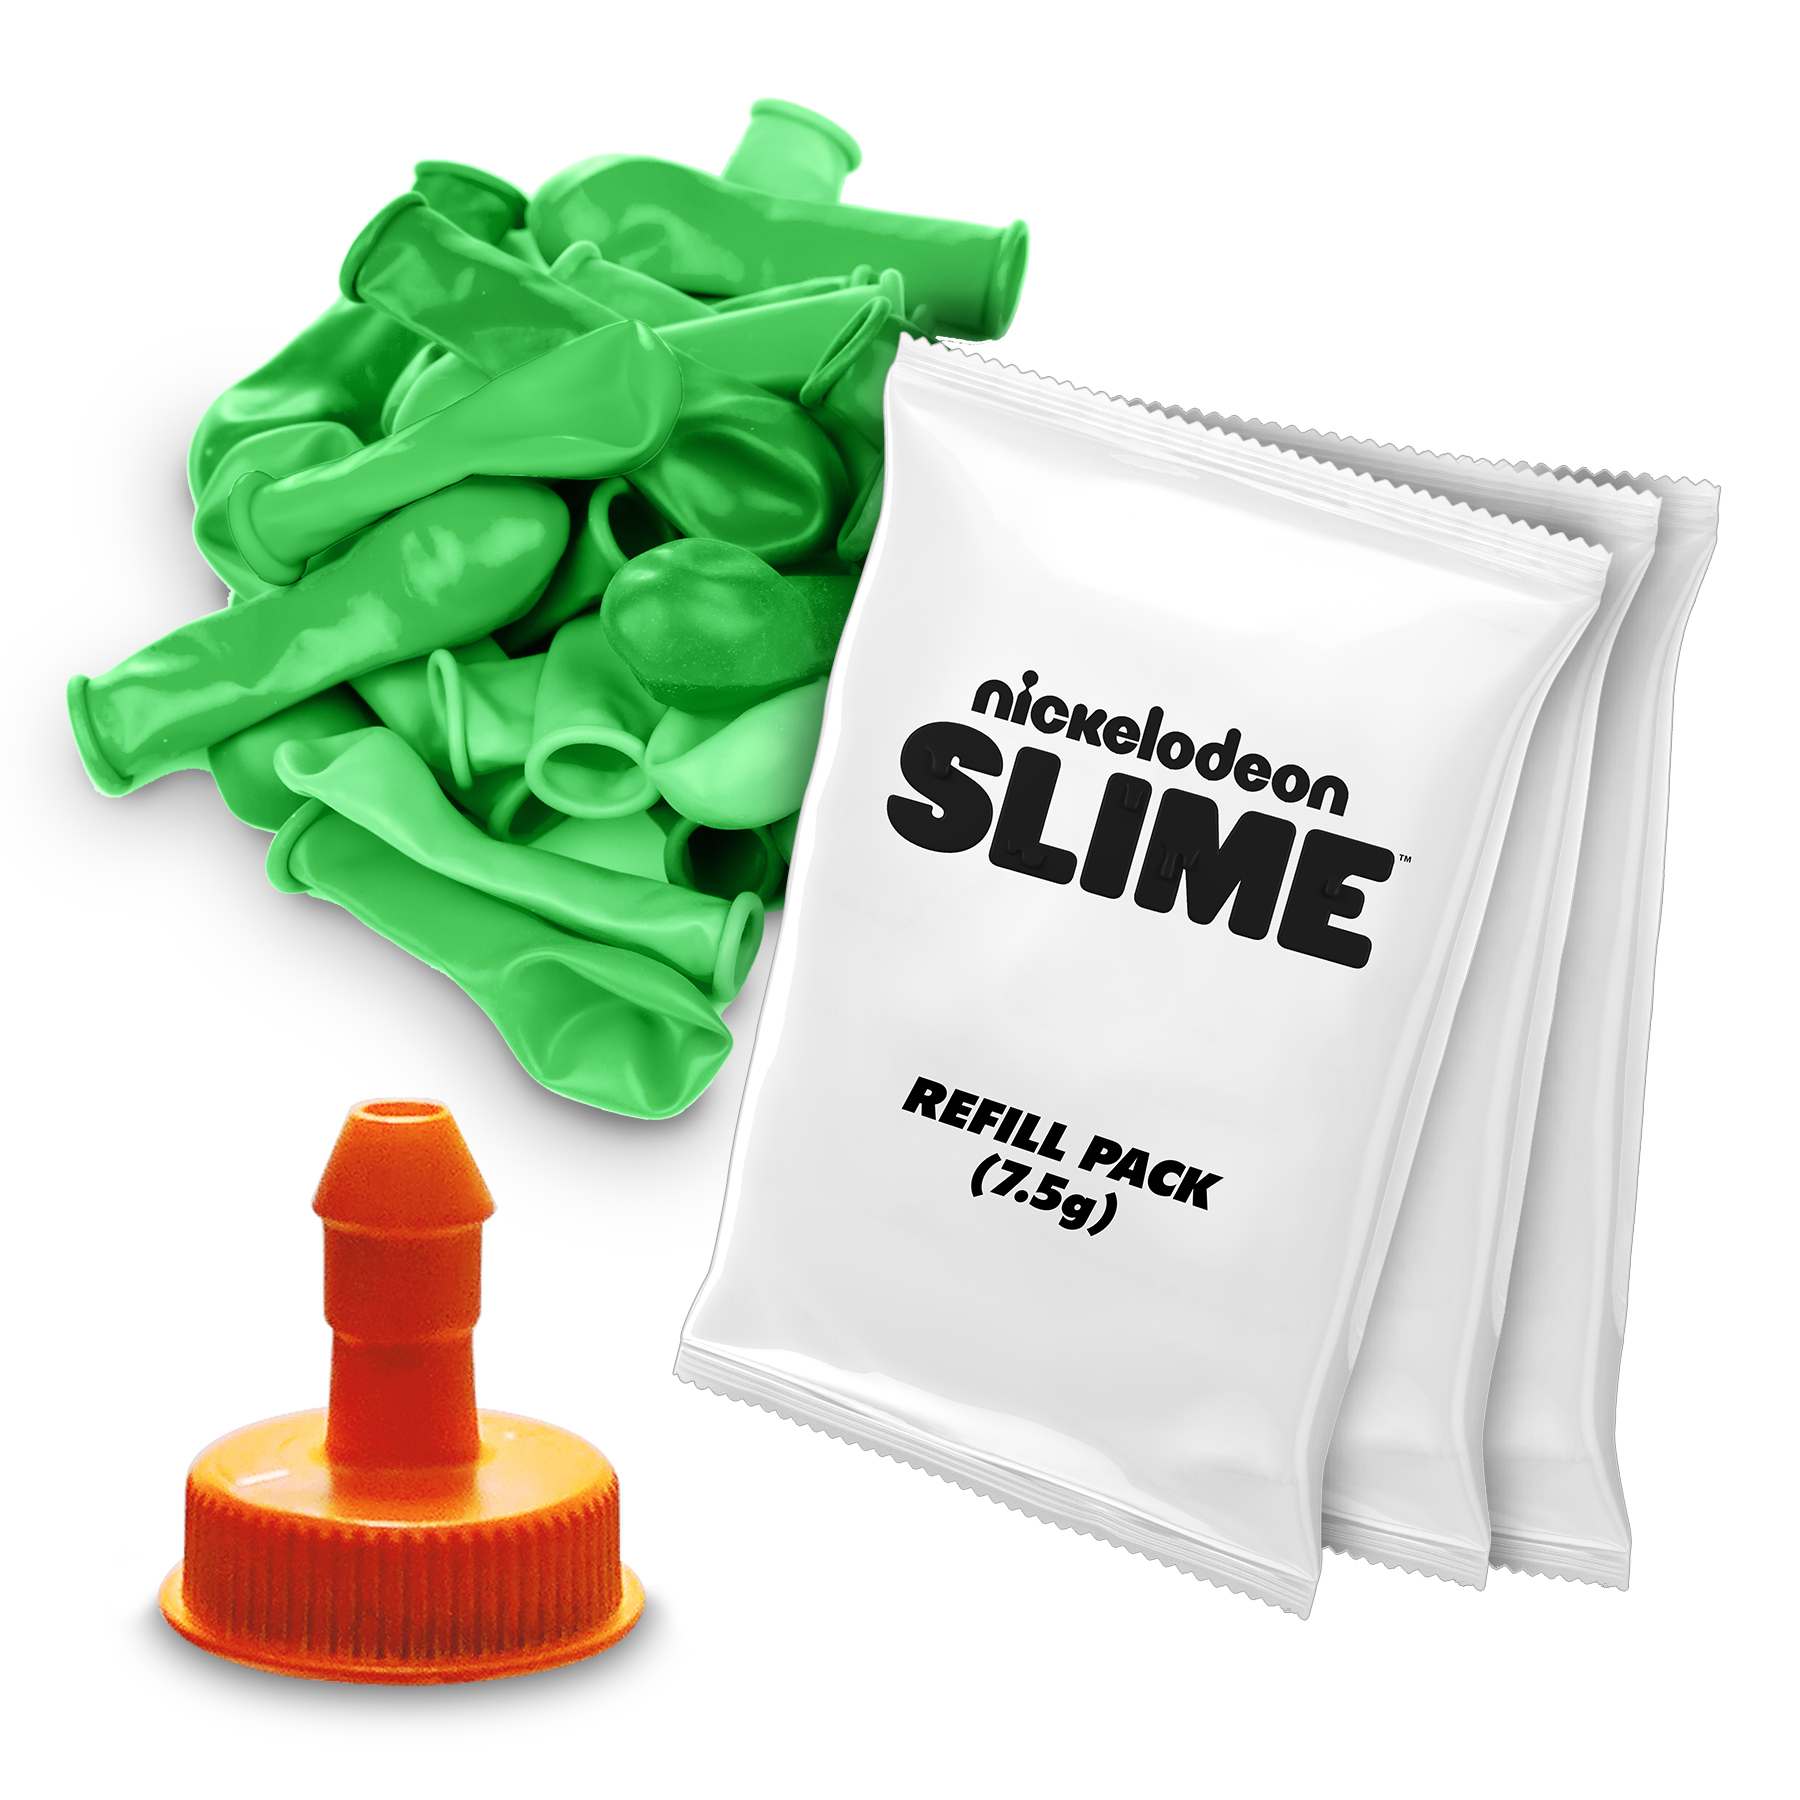 Nickelodeon Slime™ Refill Packs